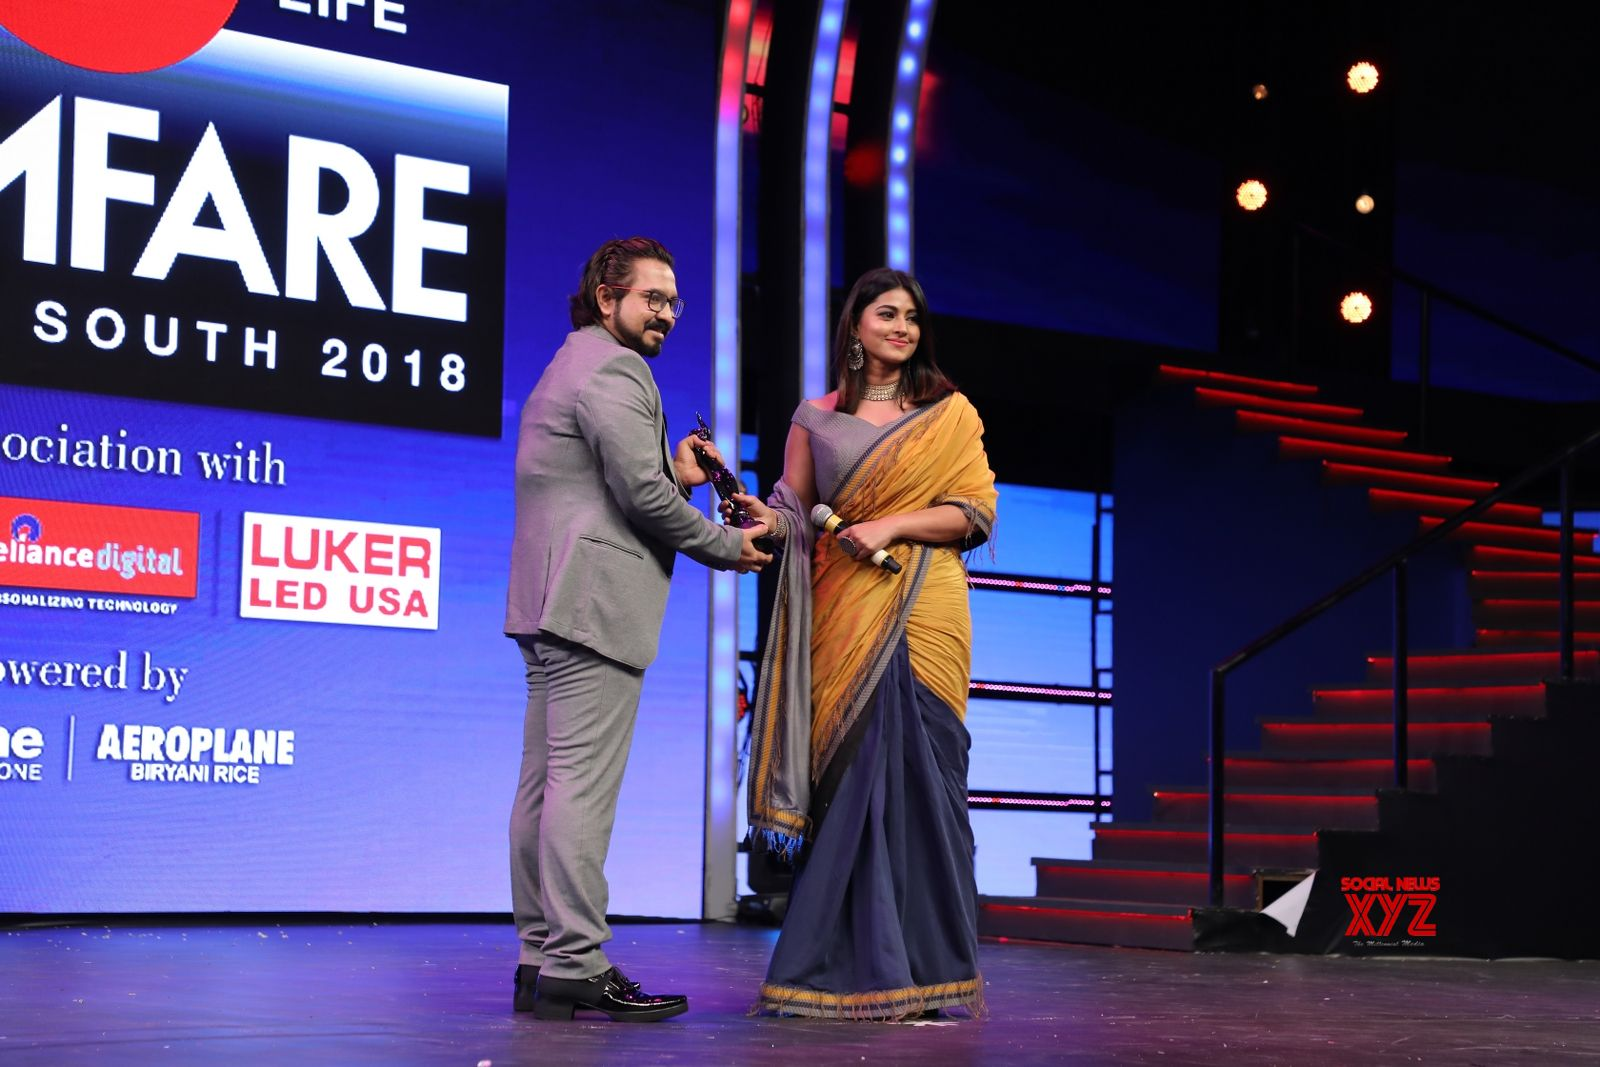 65th Jio Filmfare Awards South 2018 HD Gallery